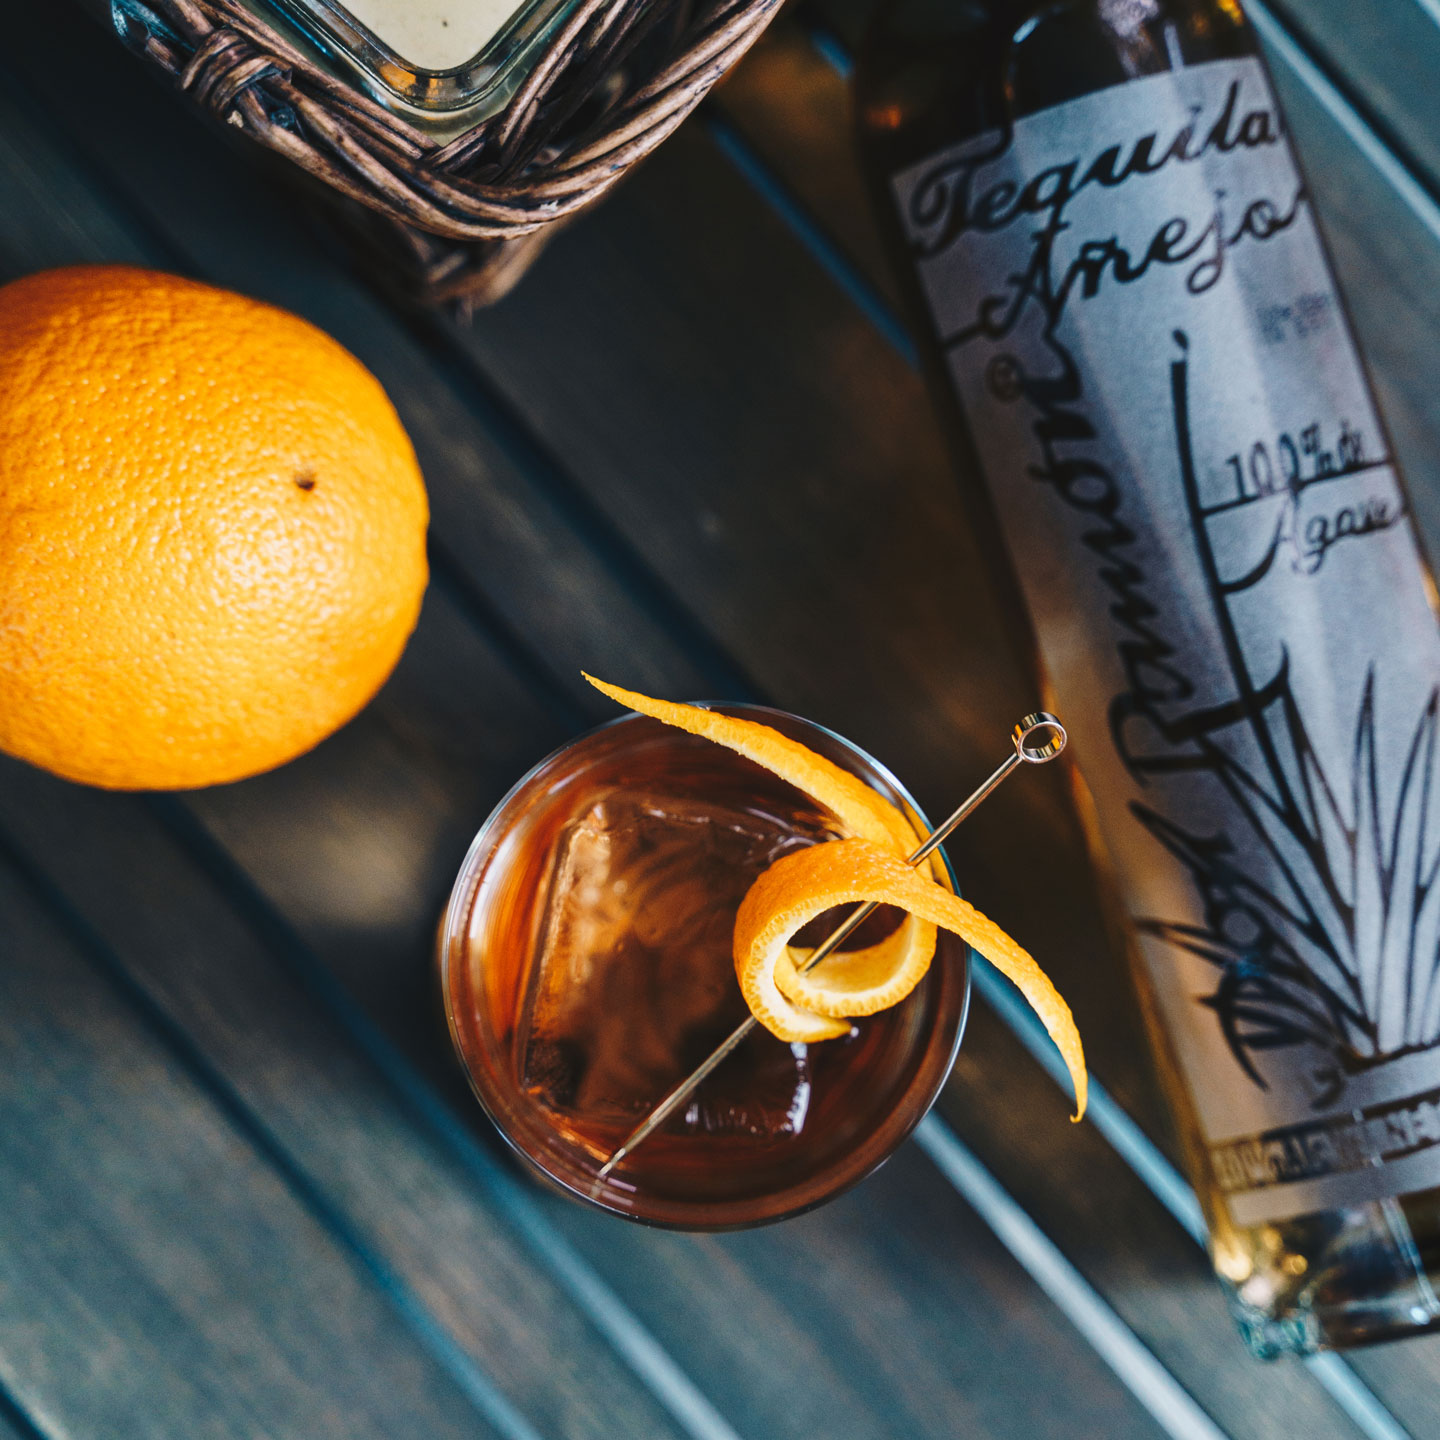 THE OAXACAN OLD FASHIONED